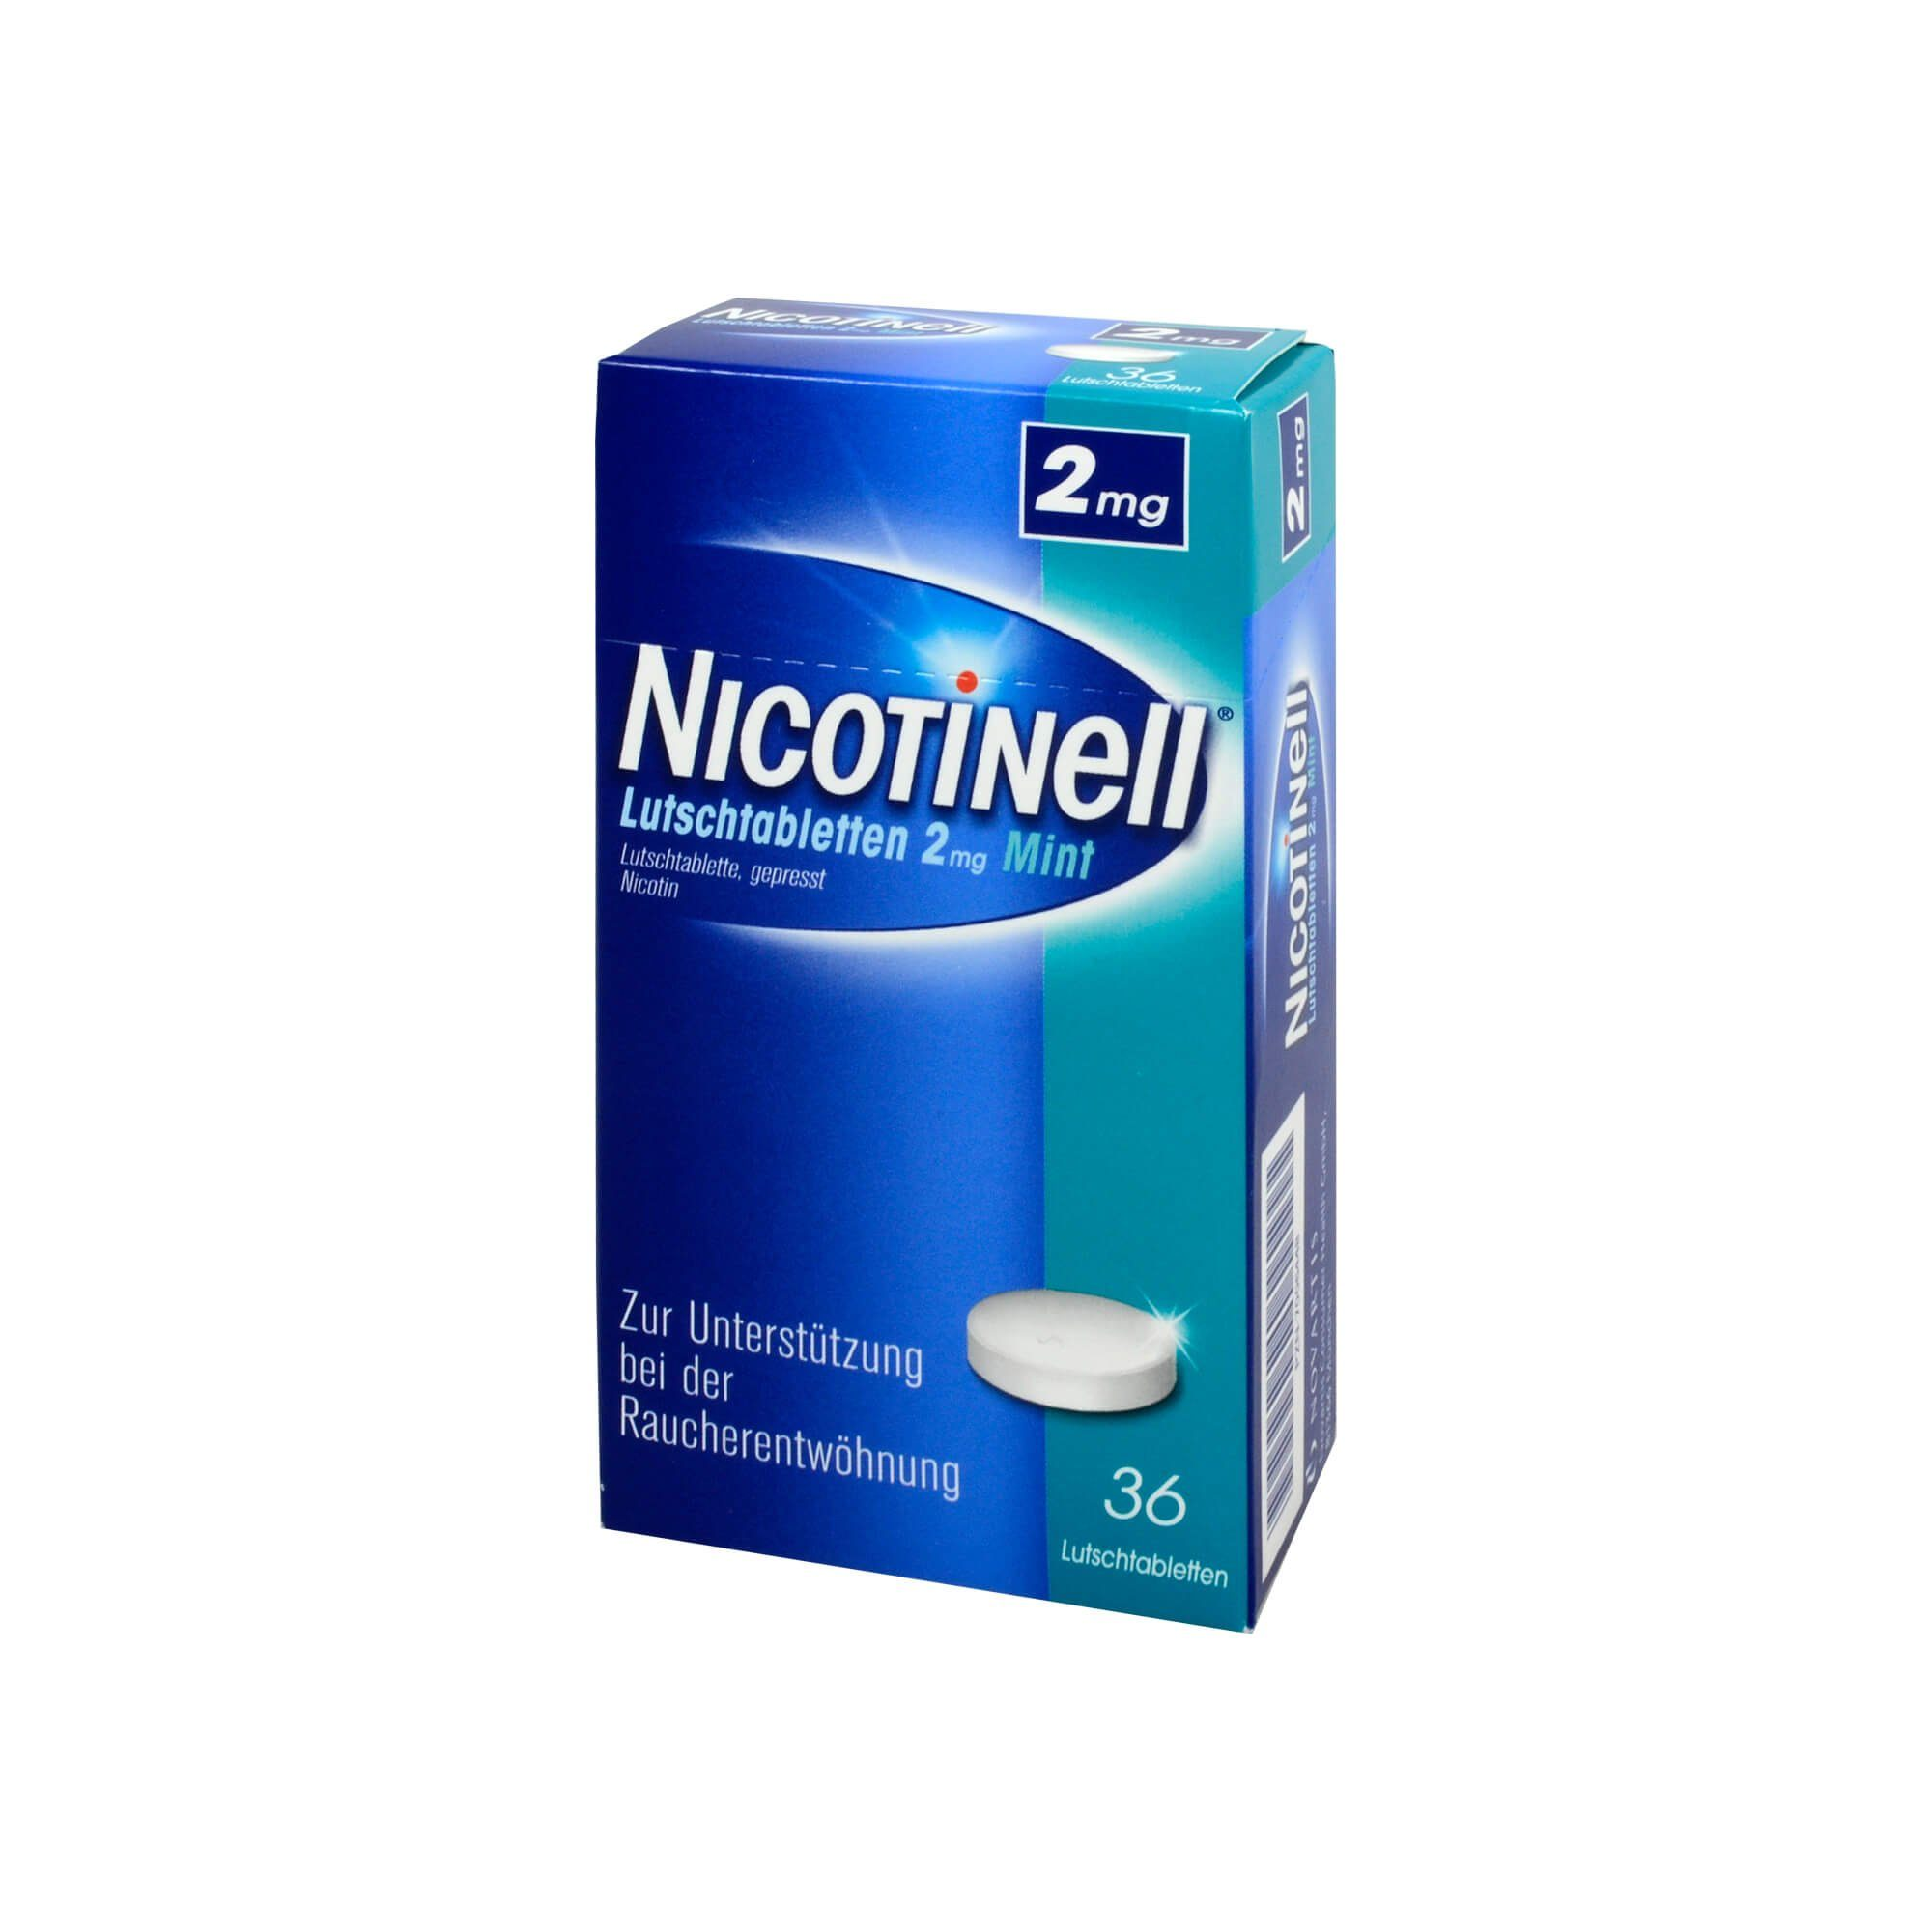 Nicotinell Lutschtabletten 2 mg Mint, 36 St